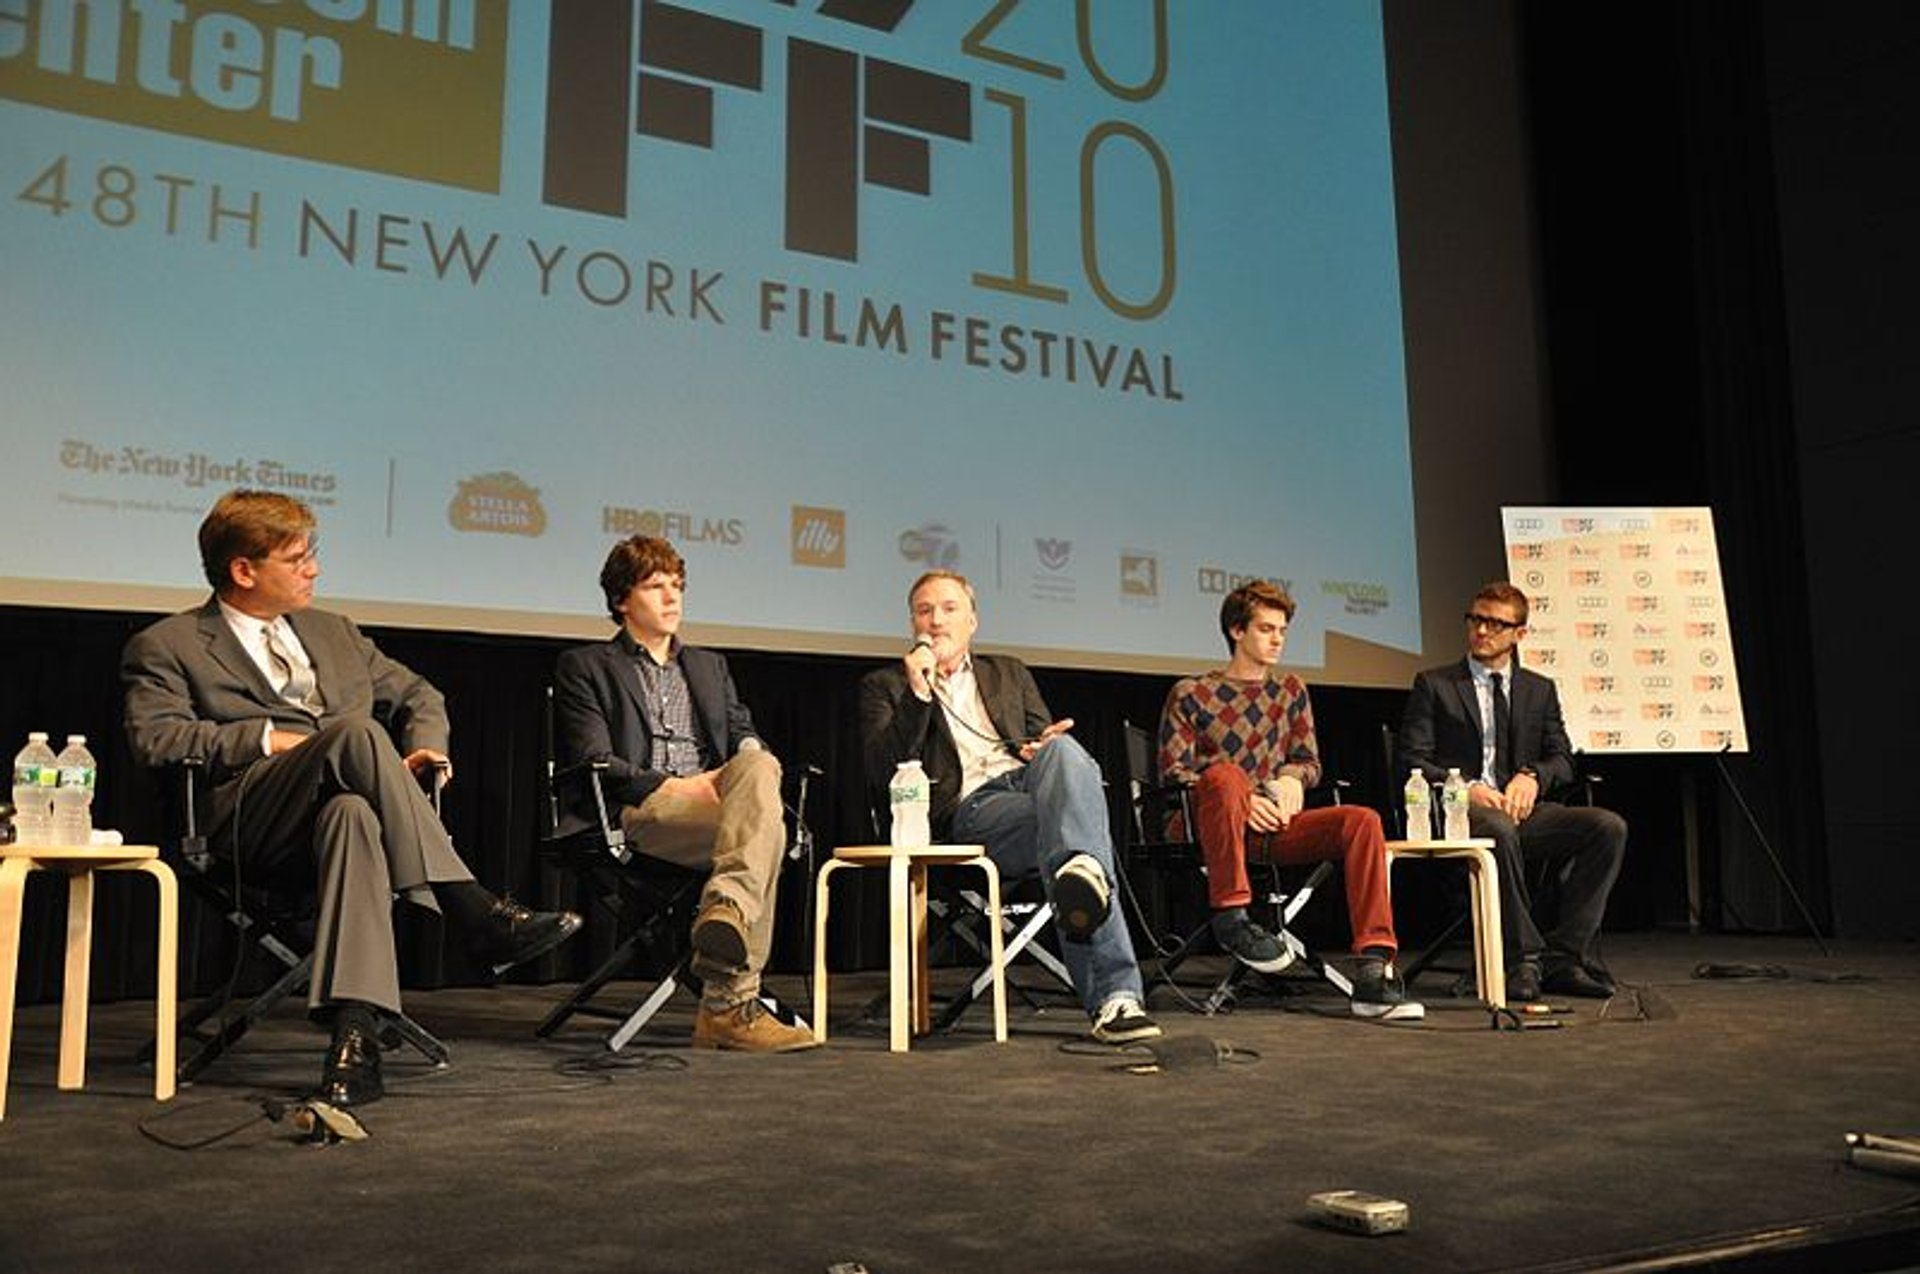 New York Film Festival (NYFF) in New York - Best Season 2020